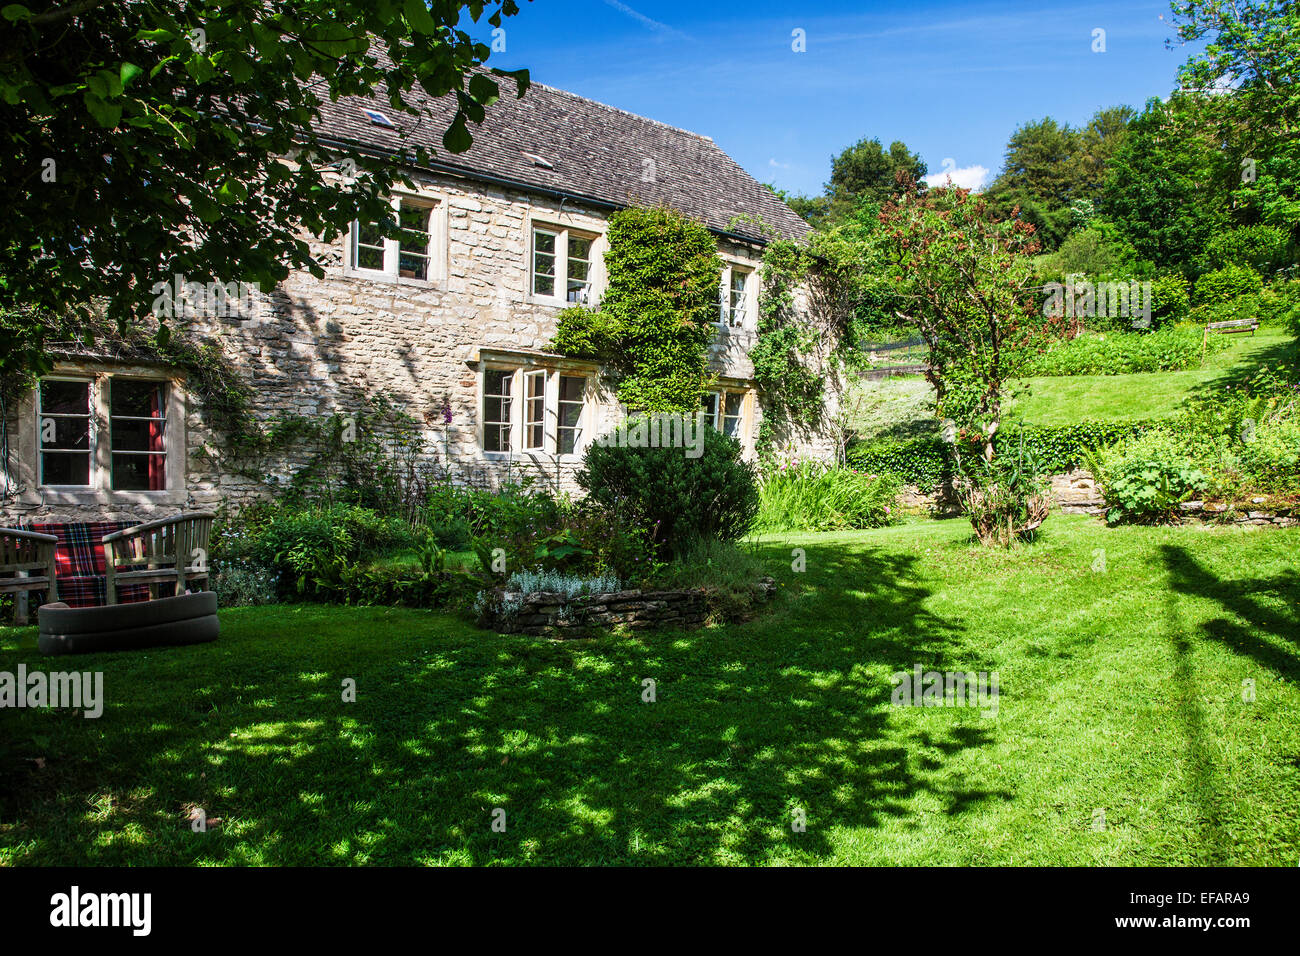 A pretty stone cottage in the Cotswold countryside. - Stock Image